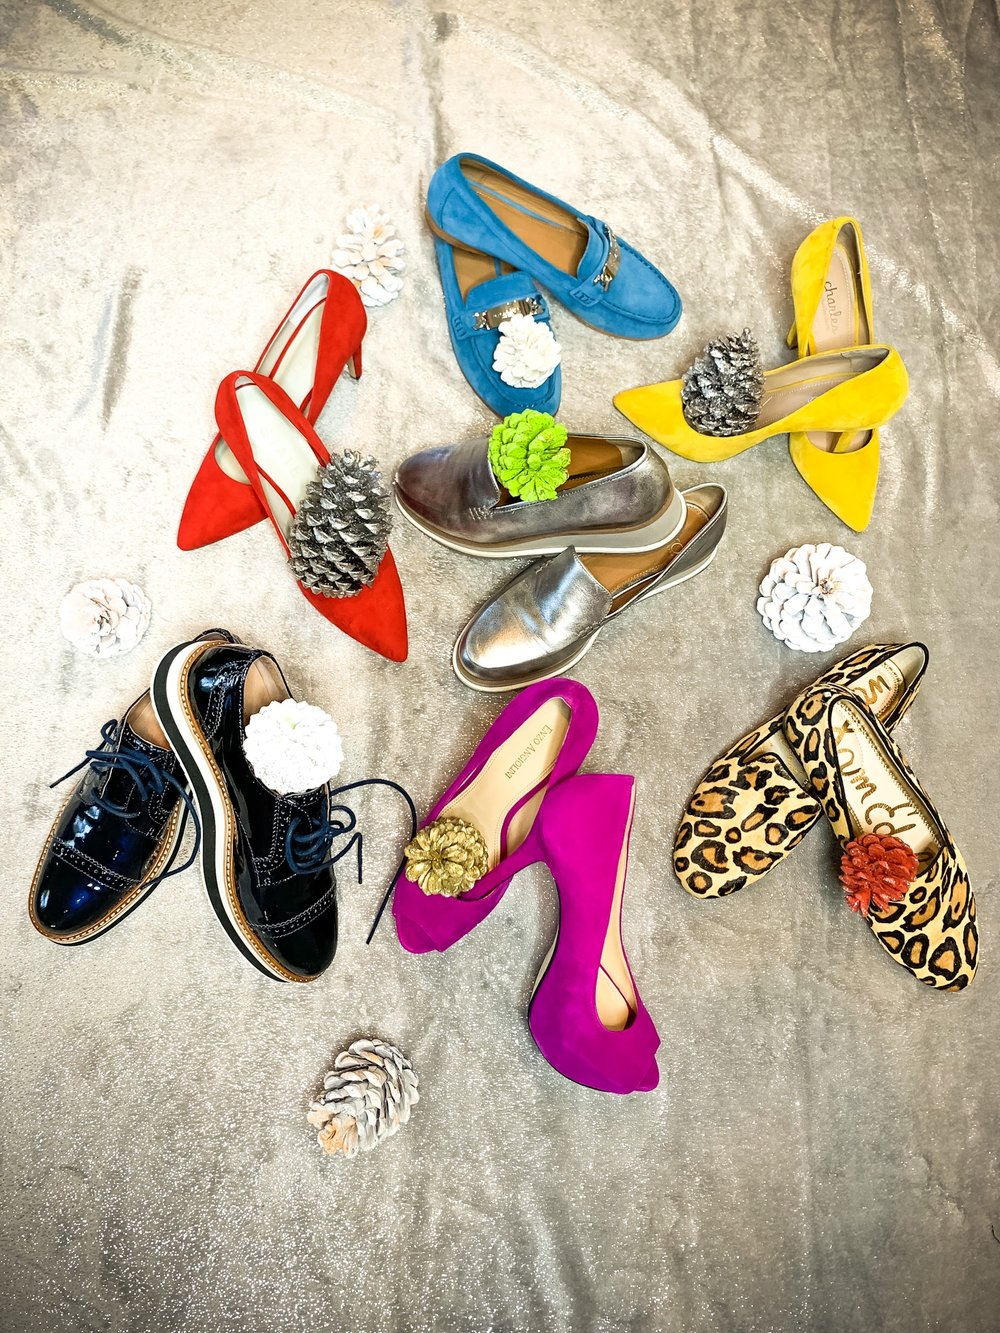 Here are my finds for shoes that pop -